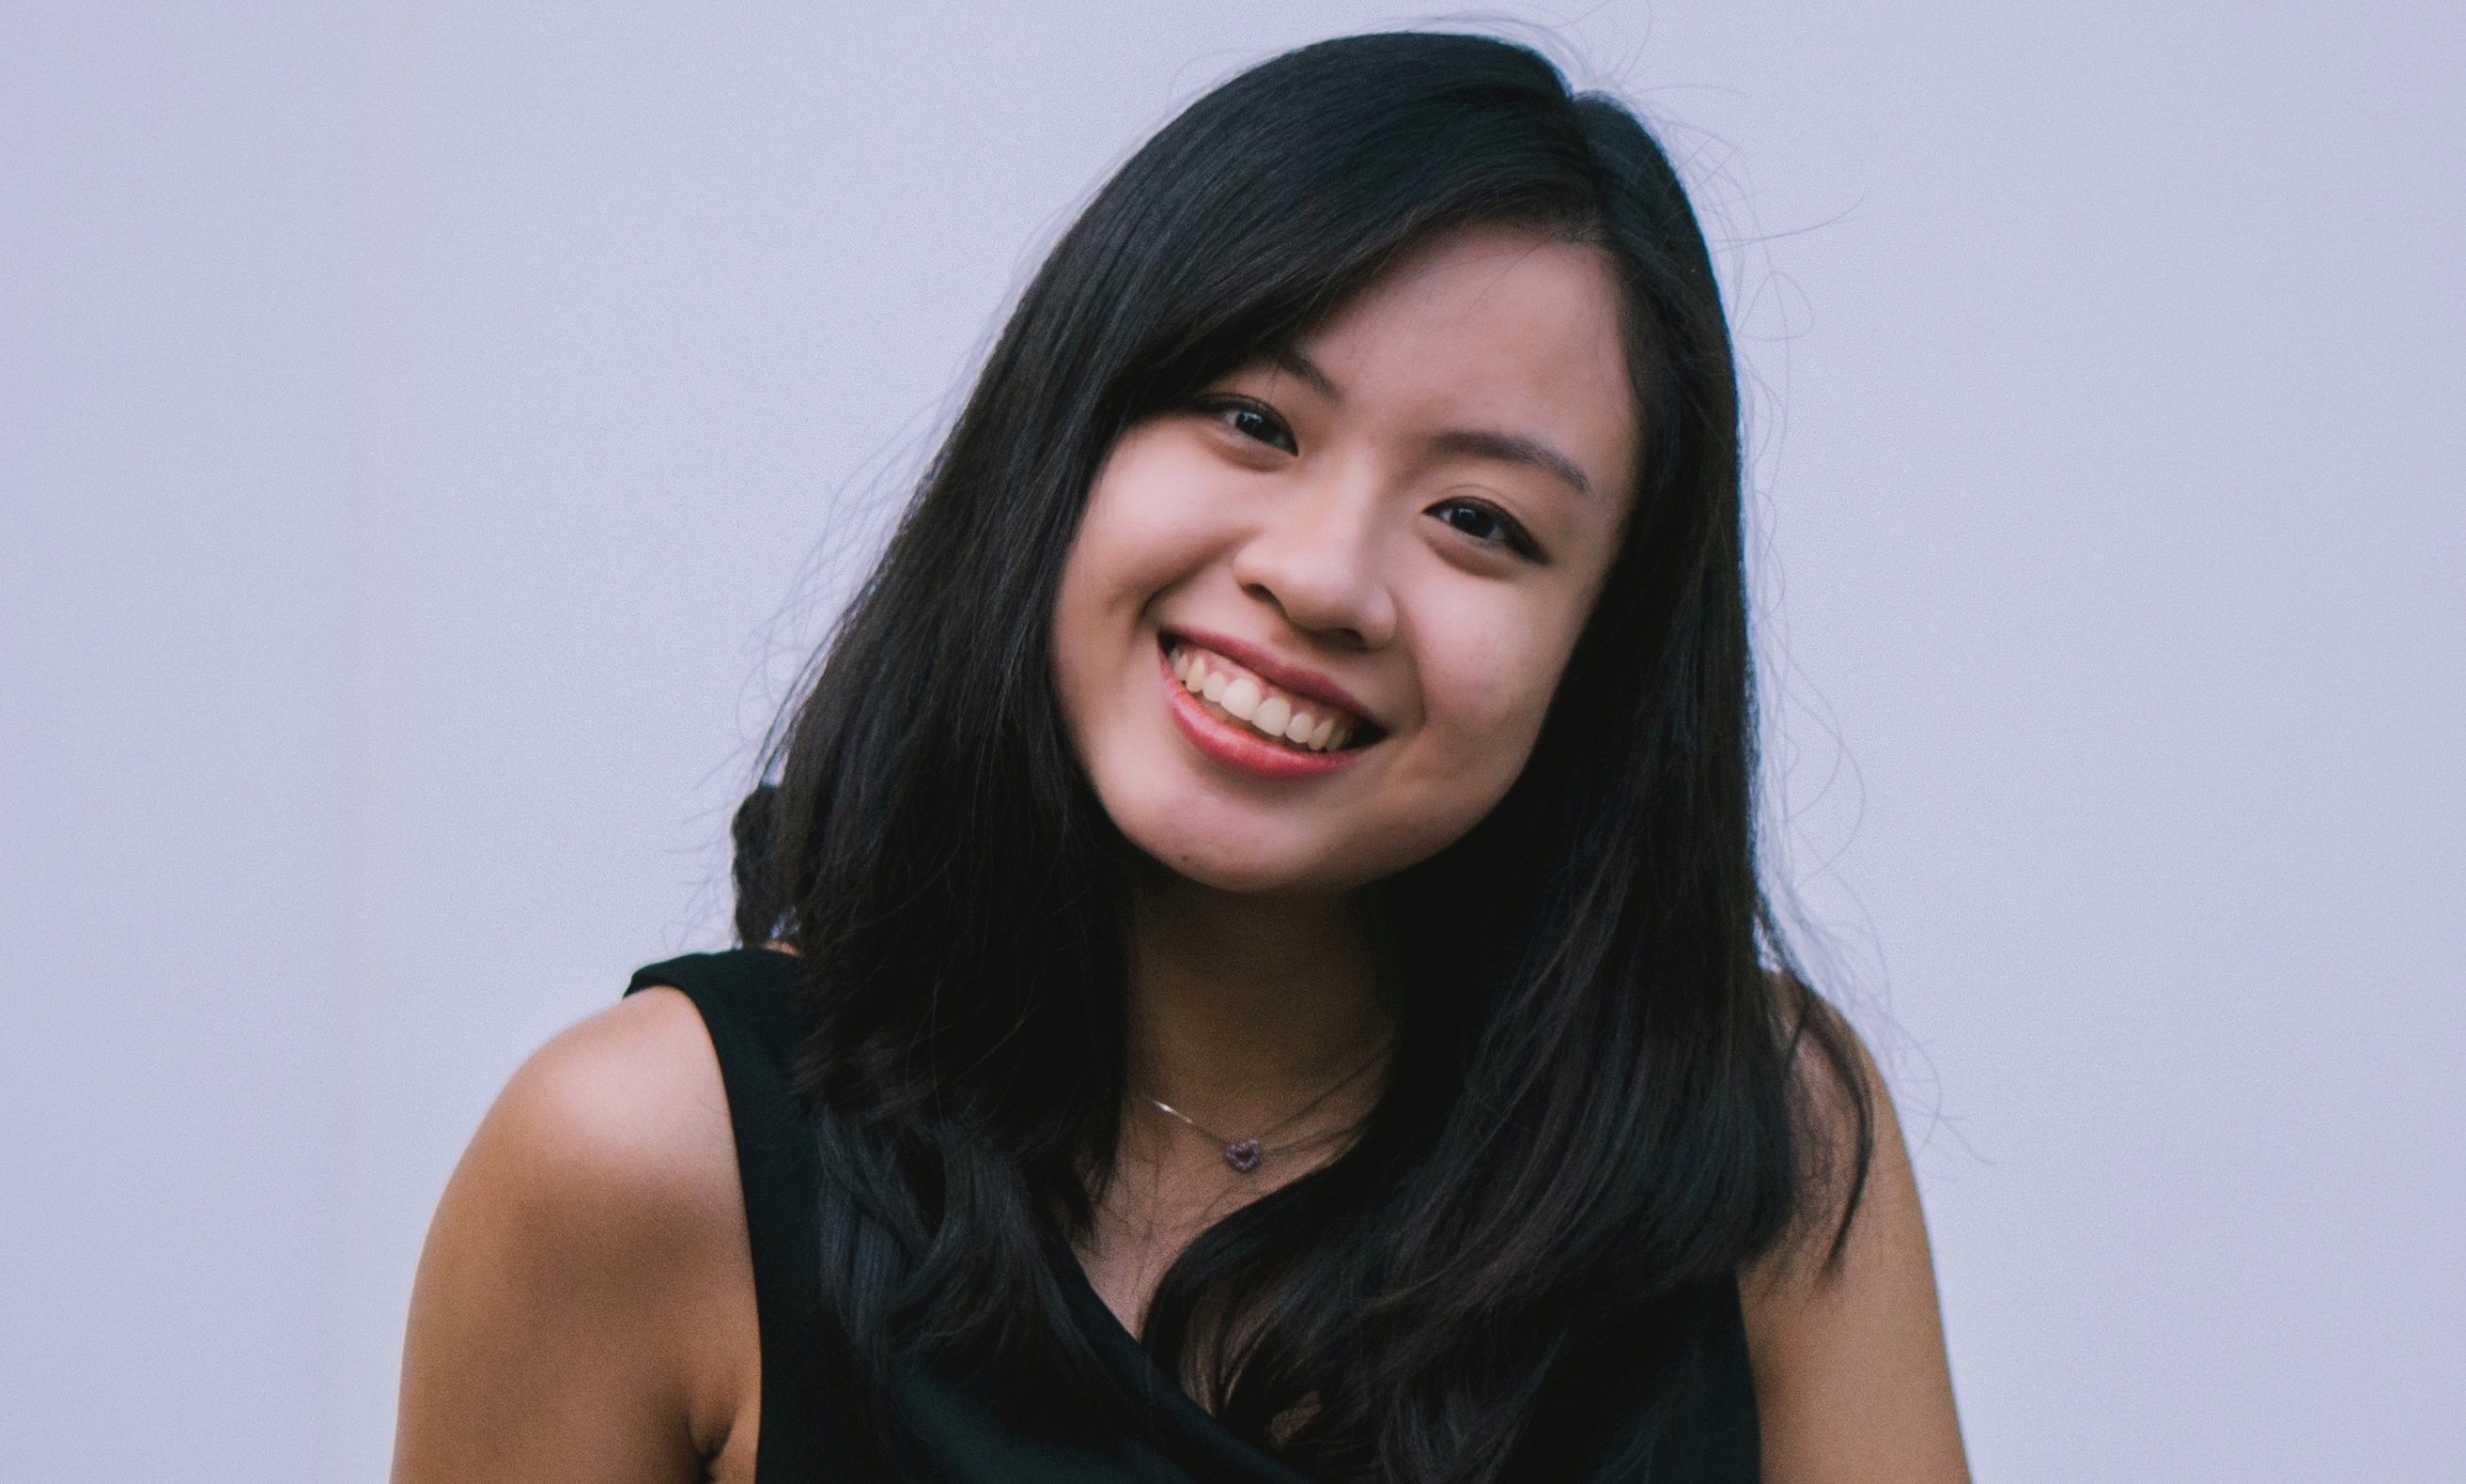 Leading in a Male-dominated Field: How Aspire's Product Manager Paves Her Own Way in Tech